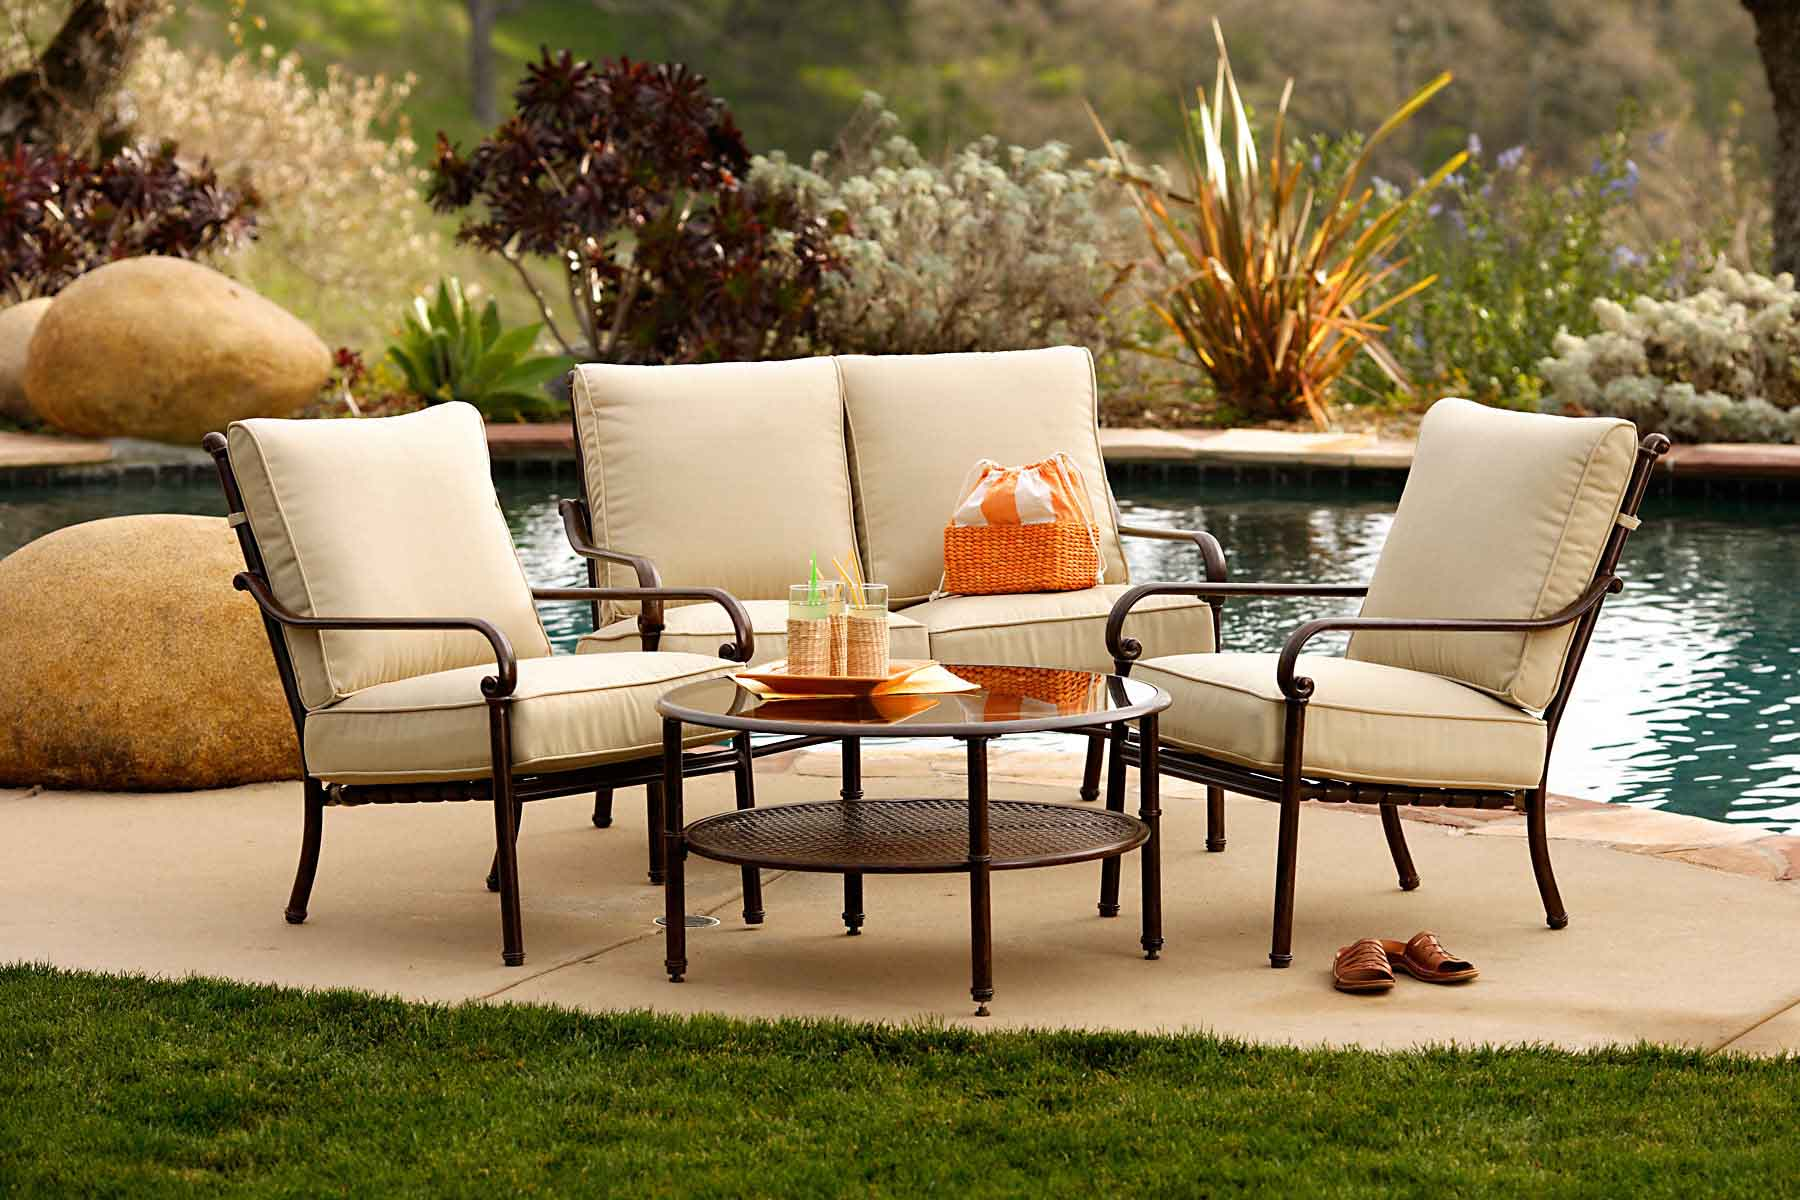 lots c big gazebos table chairs marketing patio creek furniture shadow more collection outdoor n